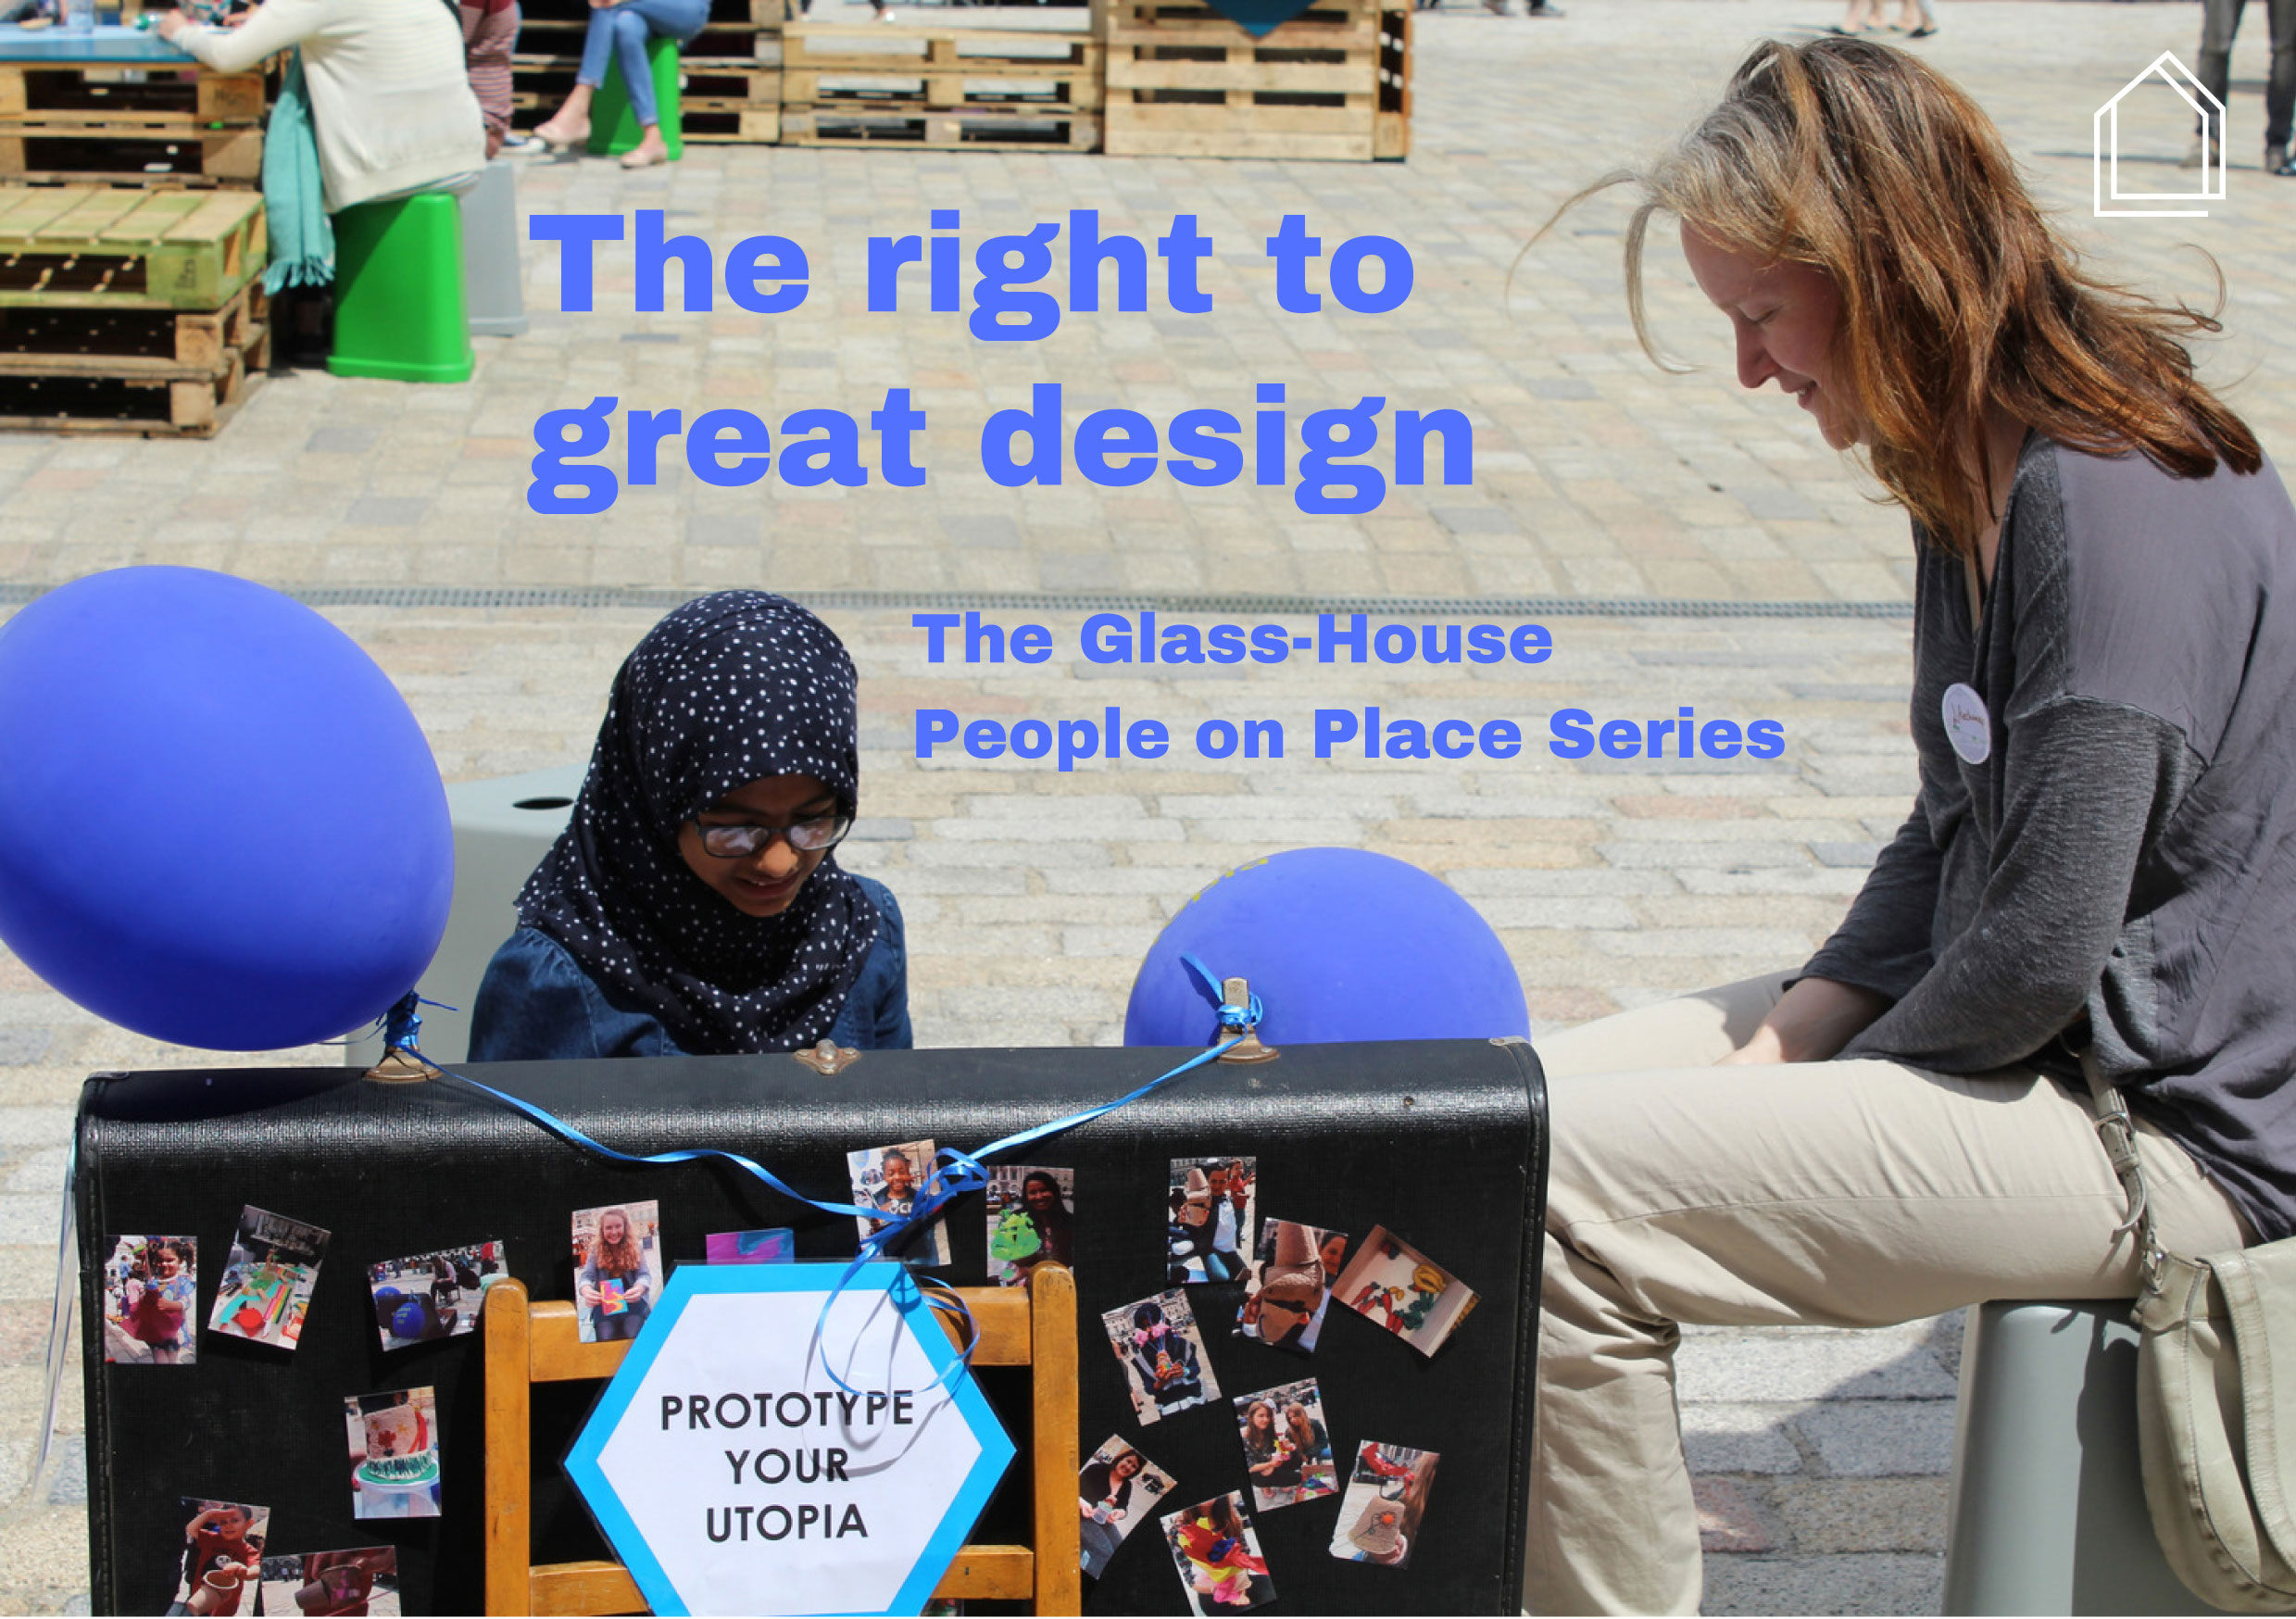 The right to great design - The Glass-House People on Place series